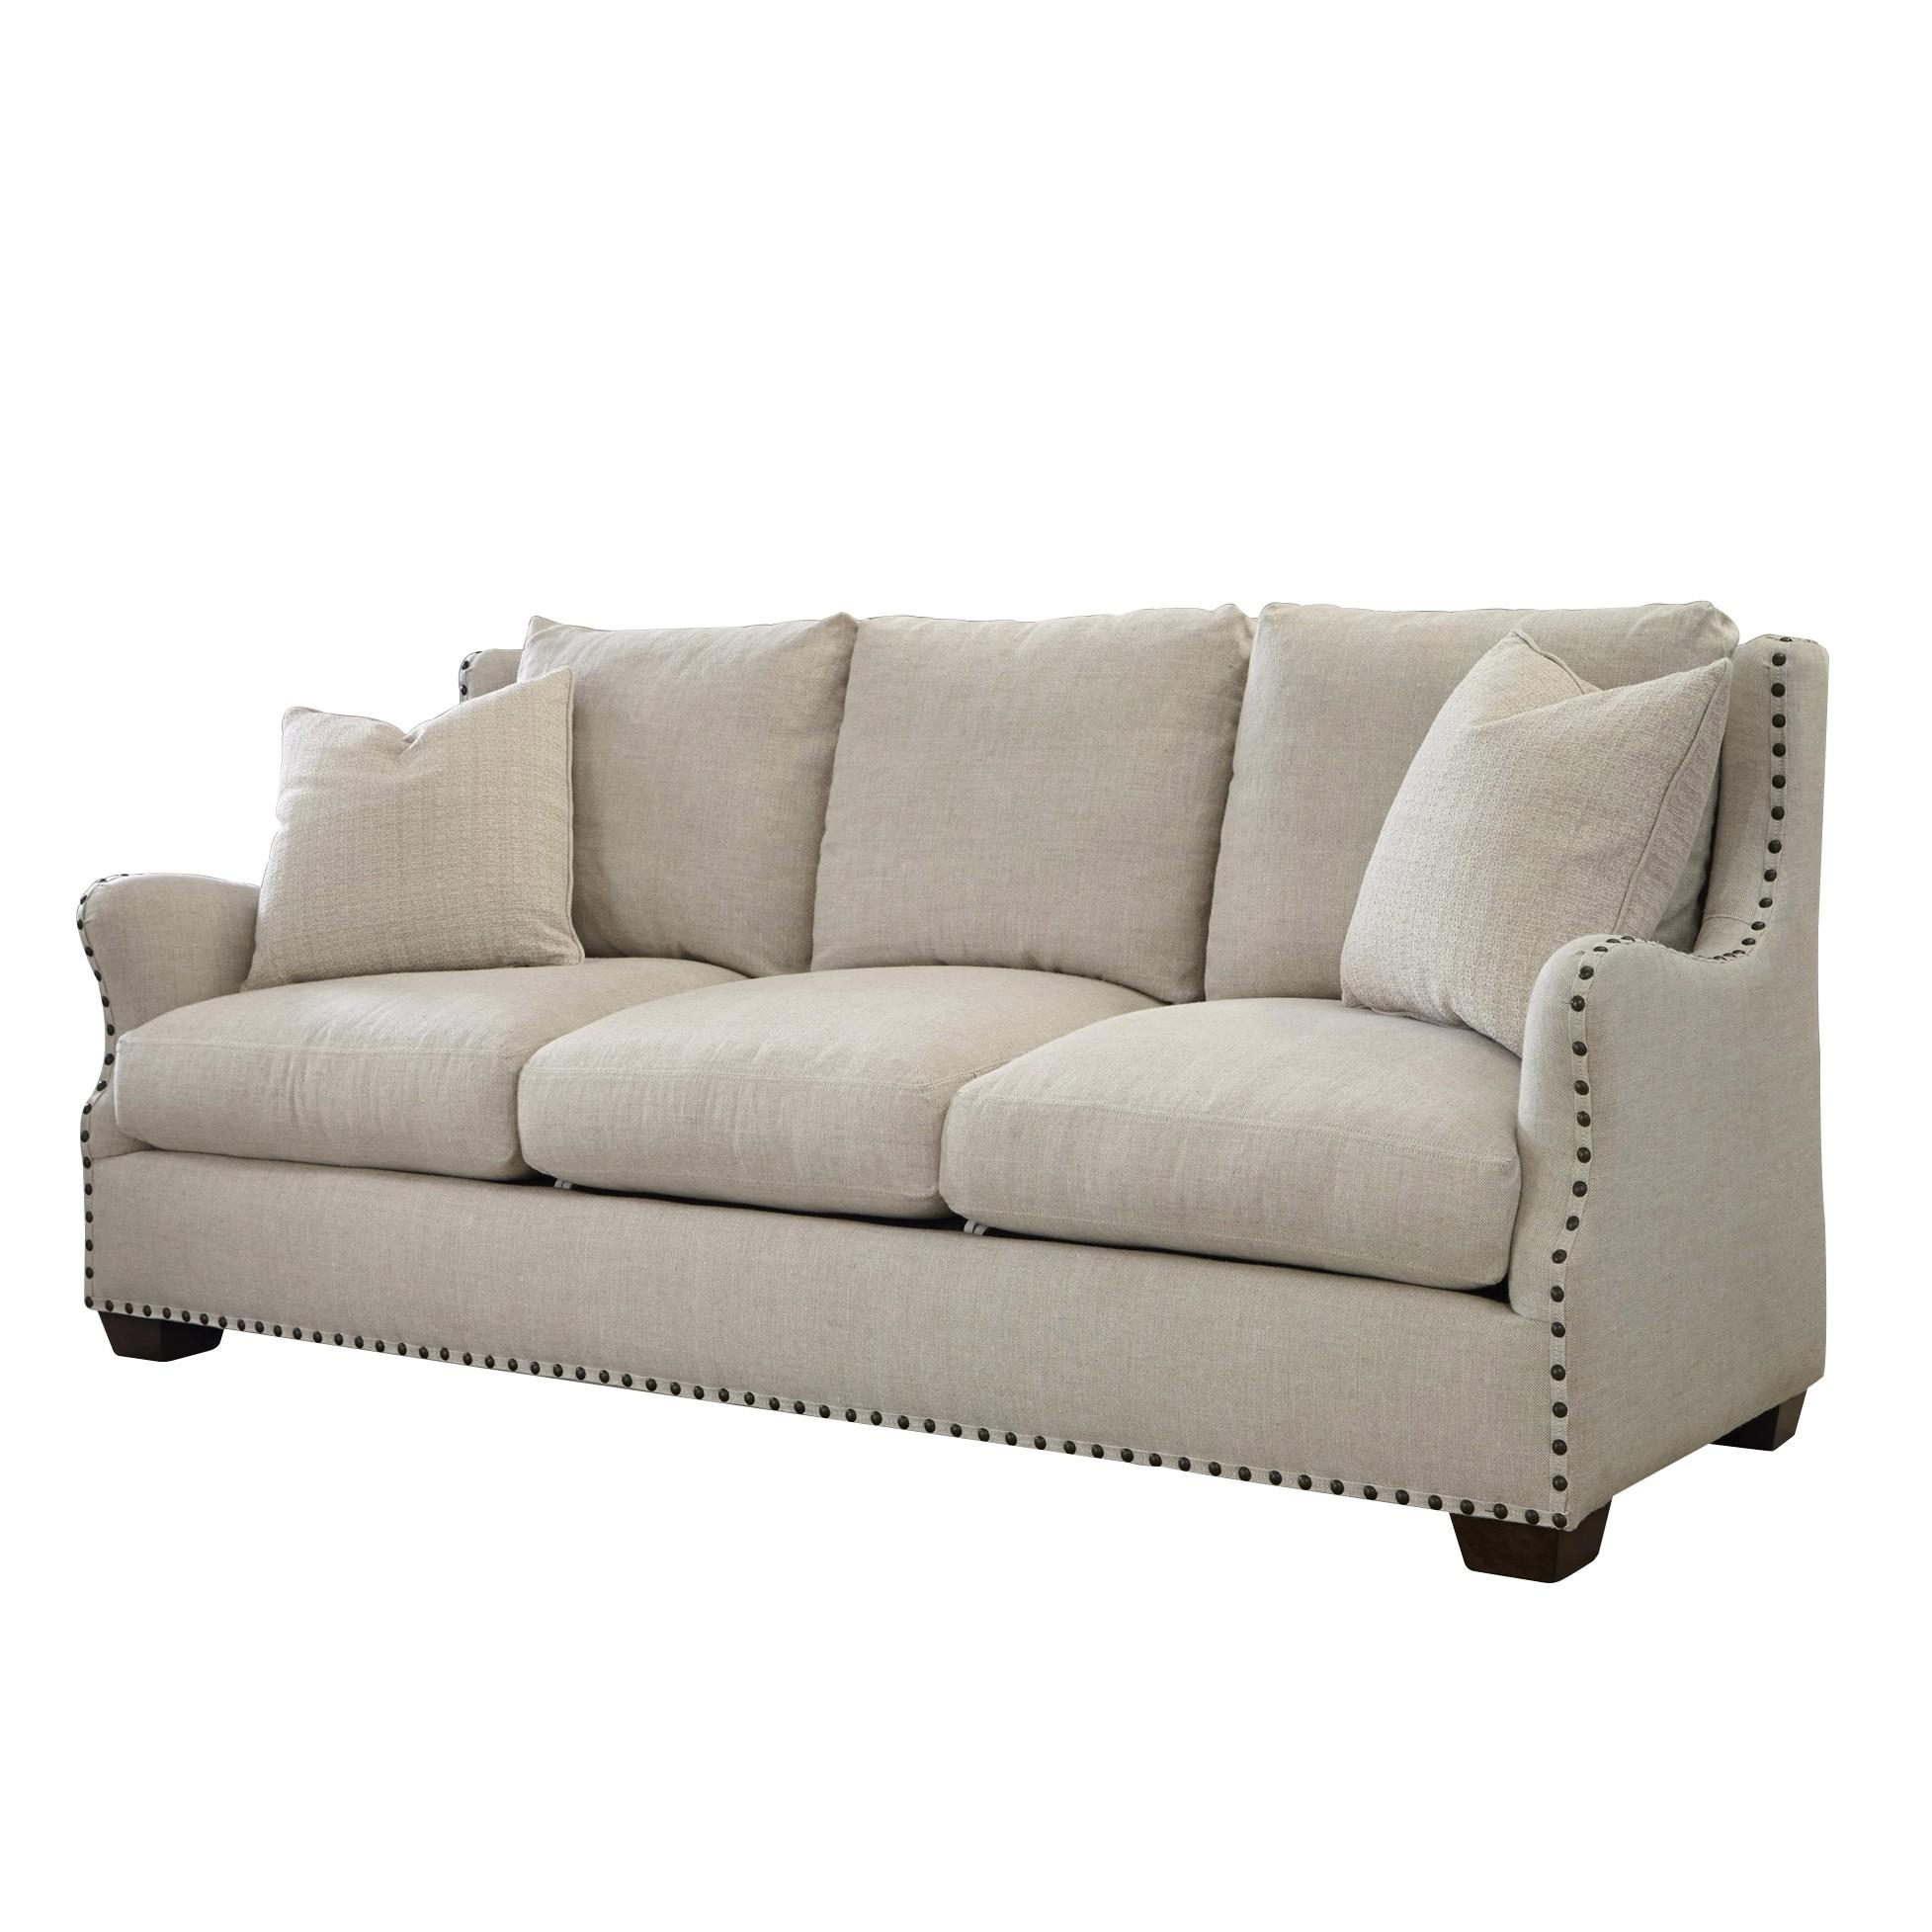 The Windsor Belgian Linen Sofa Regarding Windsor Sofas (Image 9 of 20)